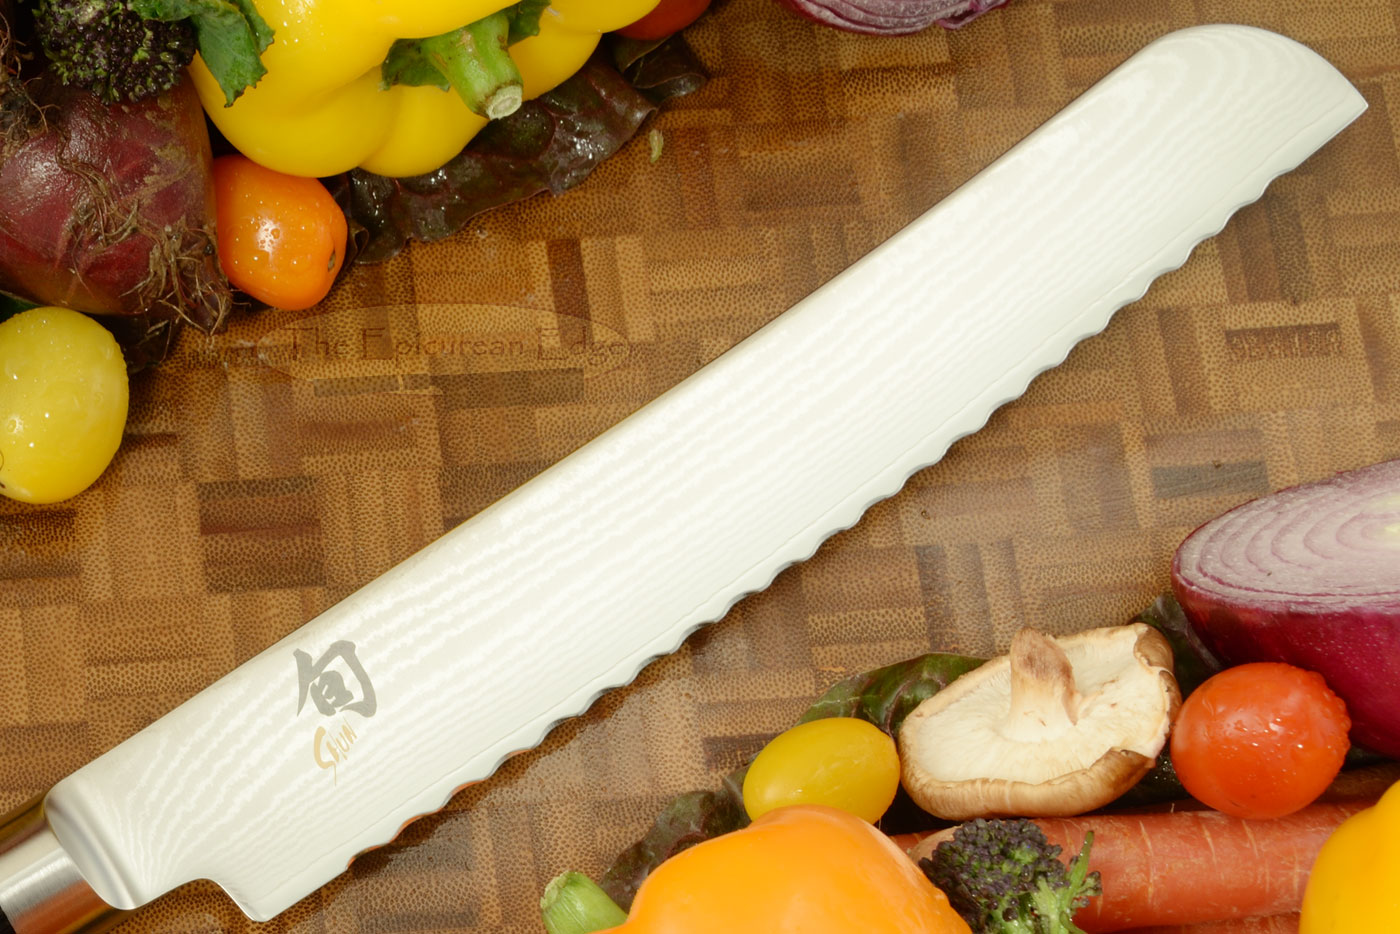 Shun Classic Bread Knife - 9 in. (DM0705)